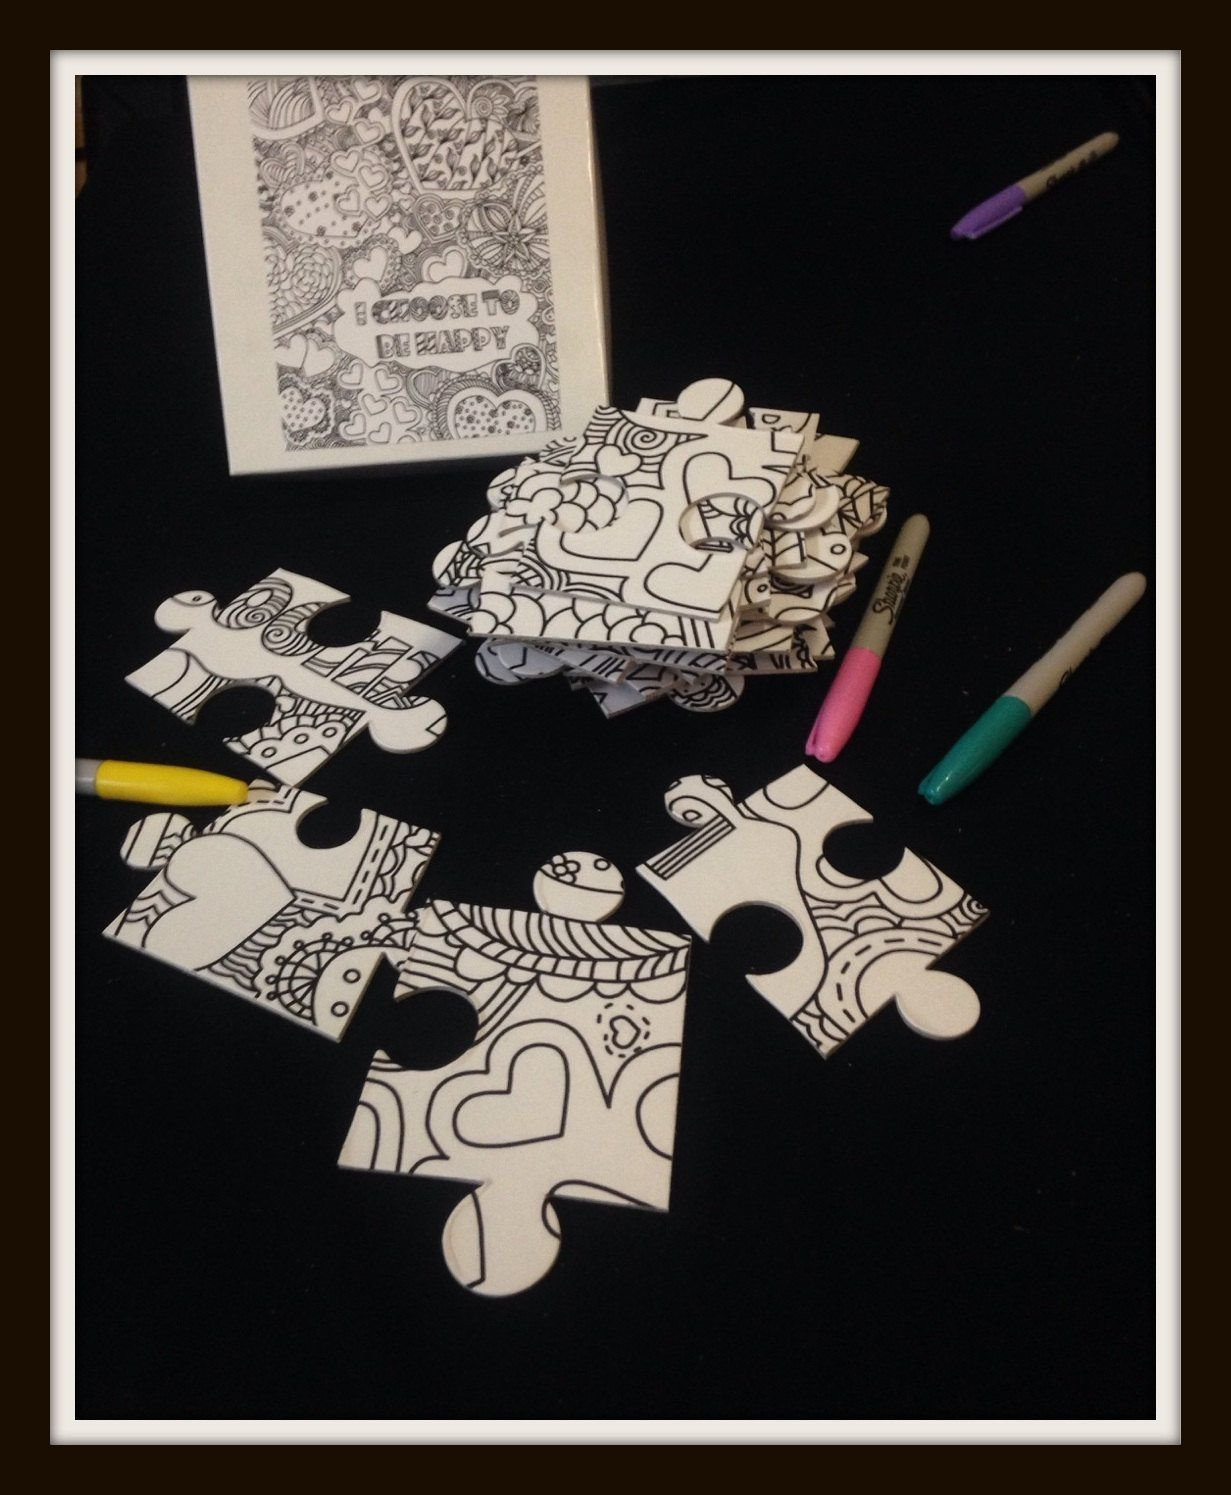 Custom Puzzle - Coloring Book Puzzle With Inspirational Quote. Paint Party Alternate Idea 8x10 Inches